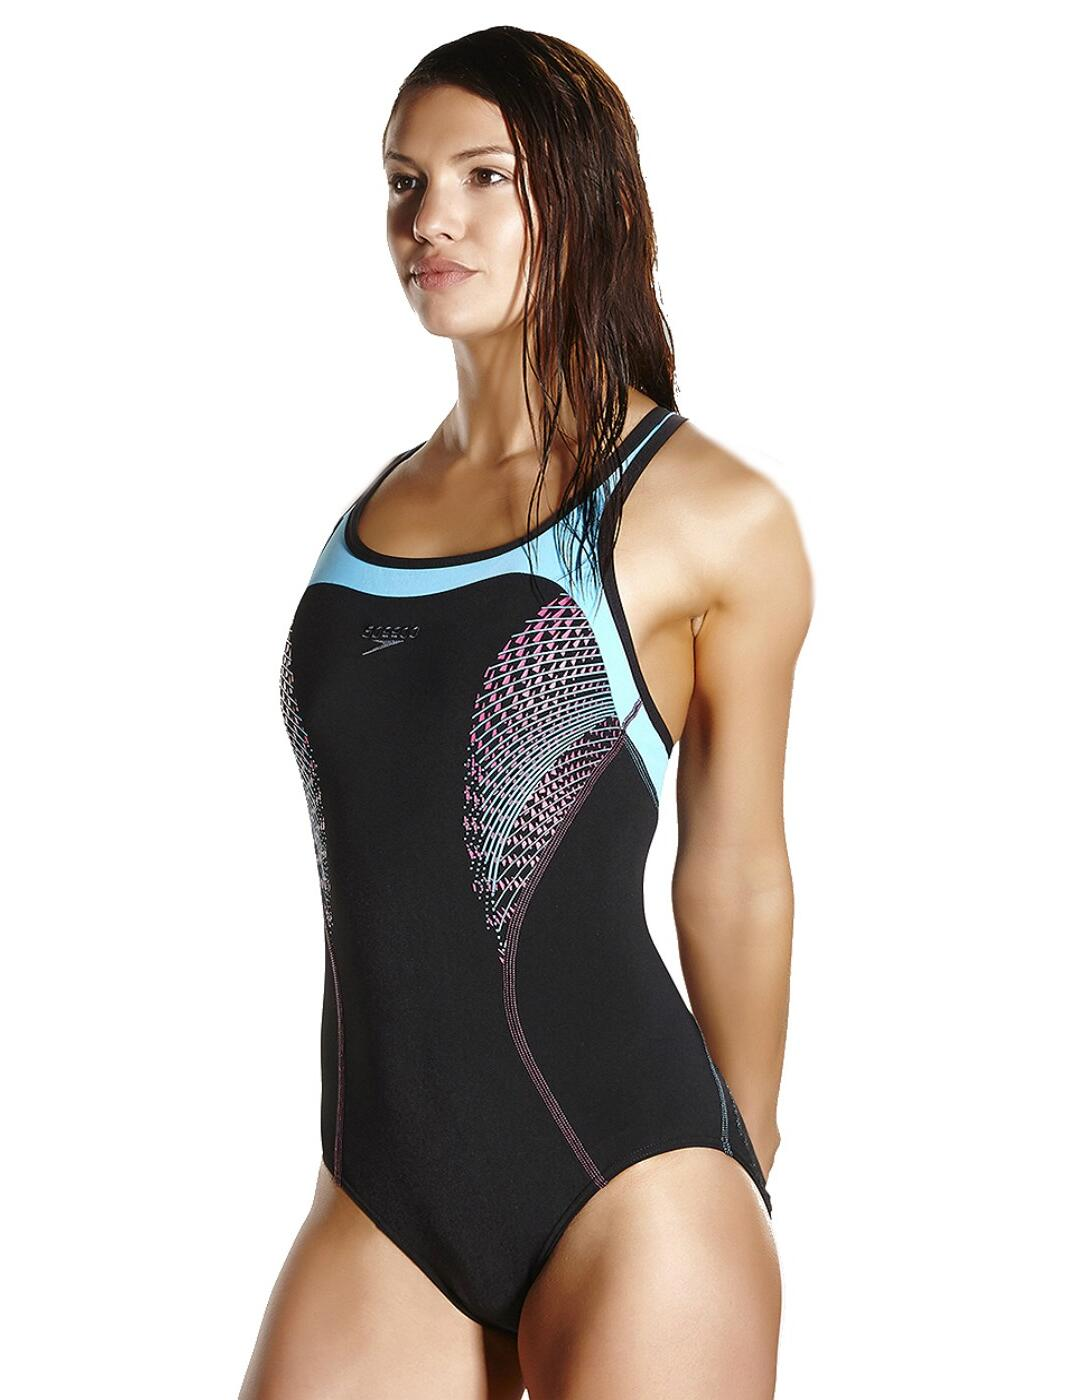 Details About Speedo Fit Kickback Swimsuit 810367b739 Blackpale Blue Swimming Costume